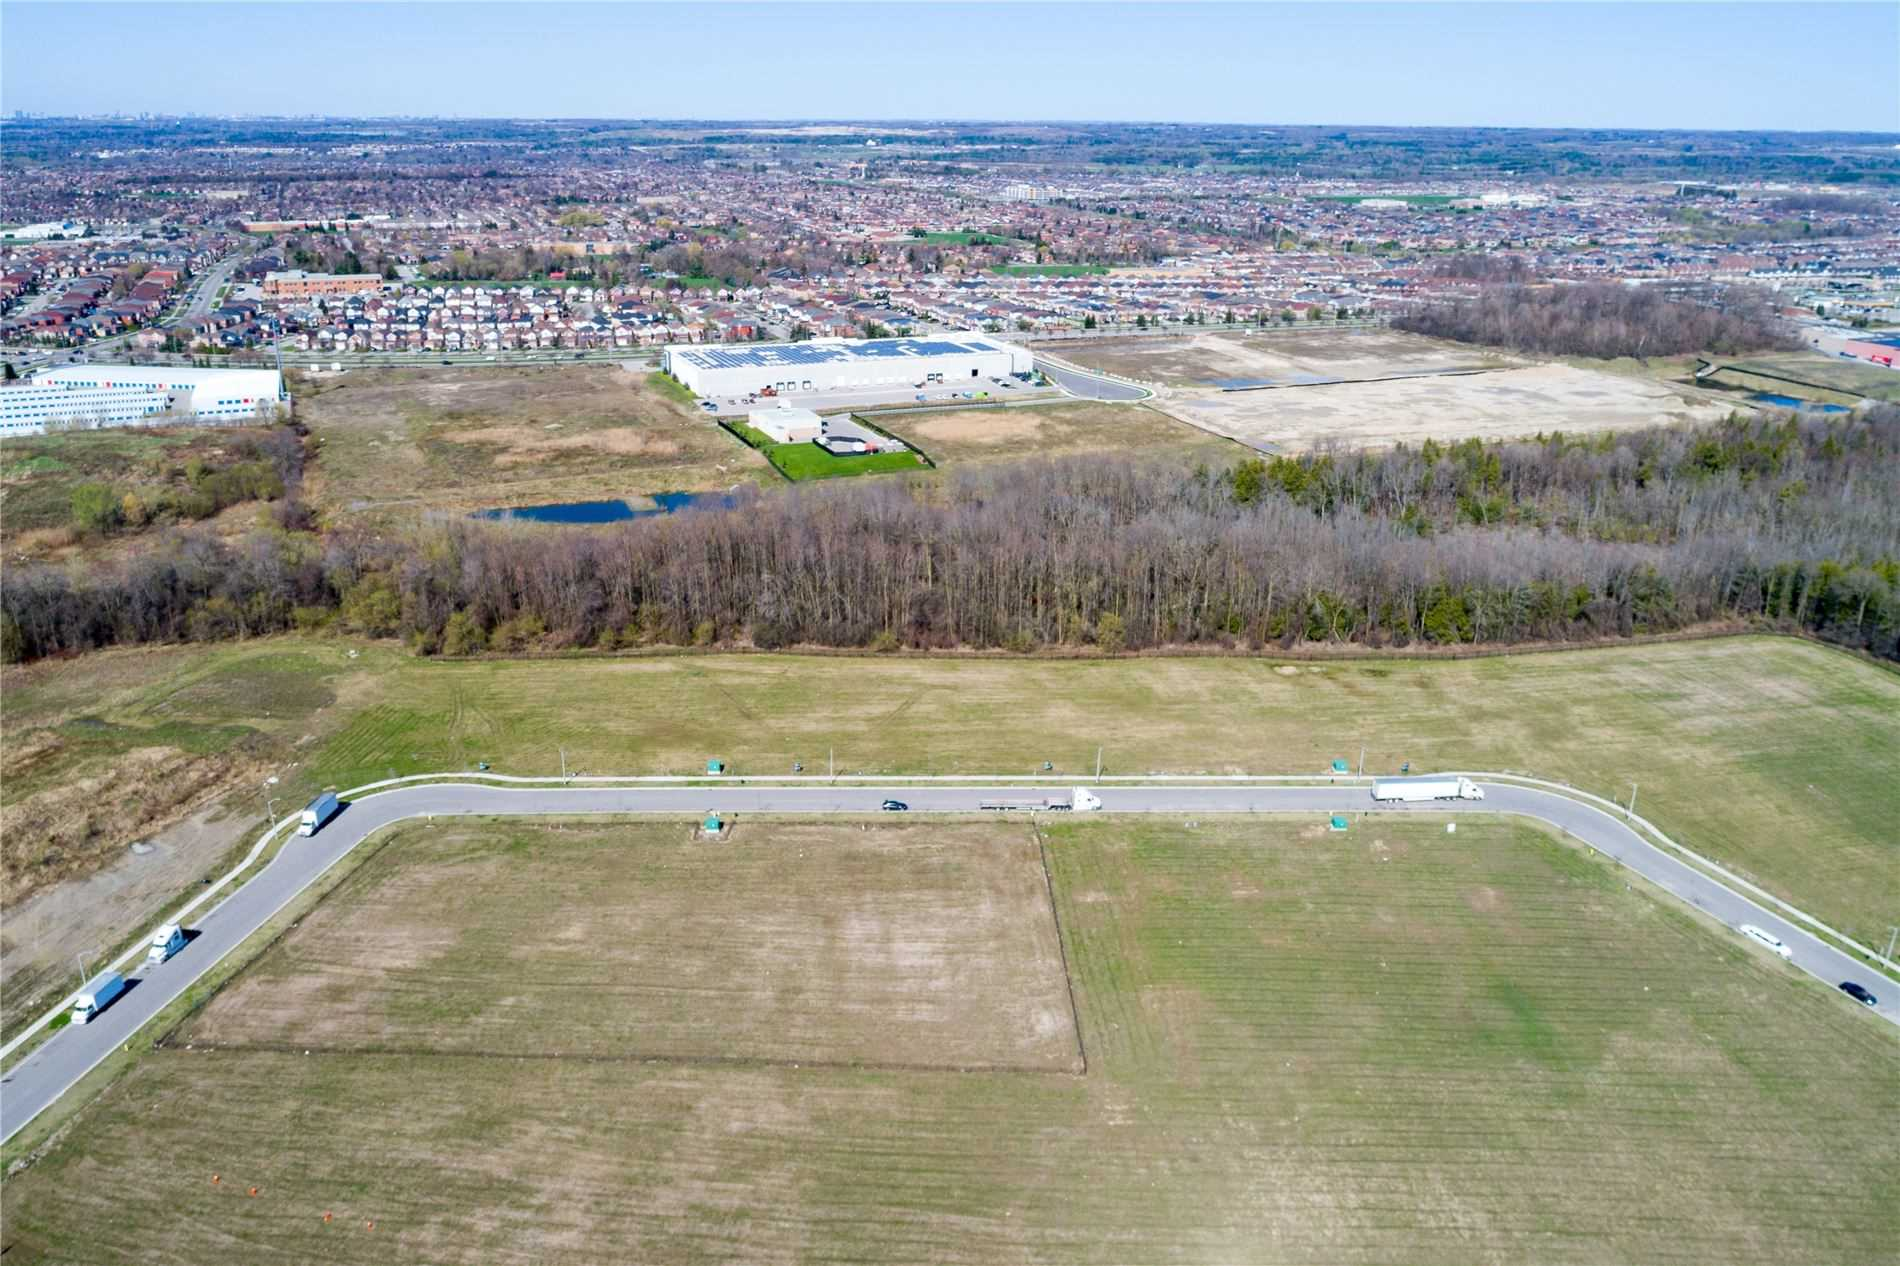 N/A Blowers Cres, Ajax, Ontario N/A, ,Land,For Sale,Blowers,E4789269